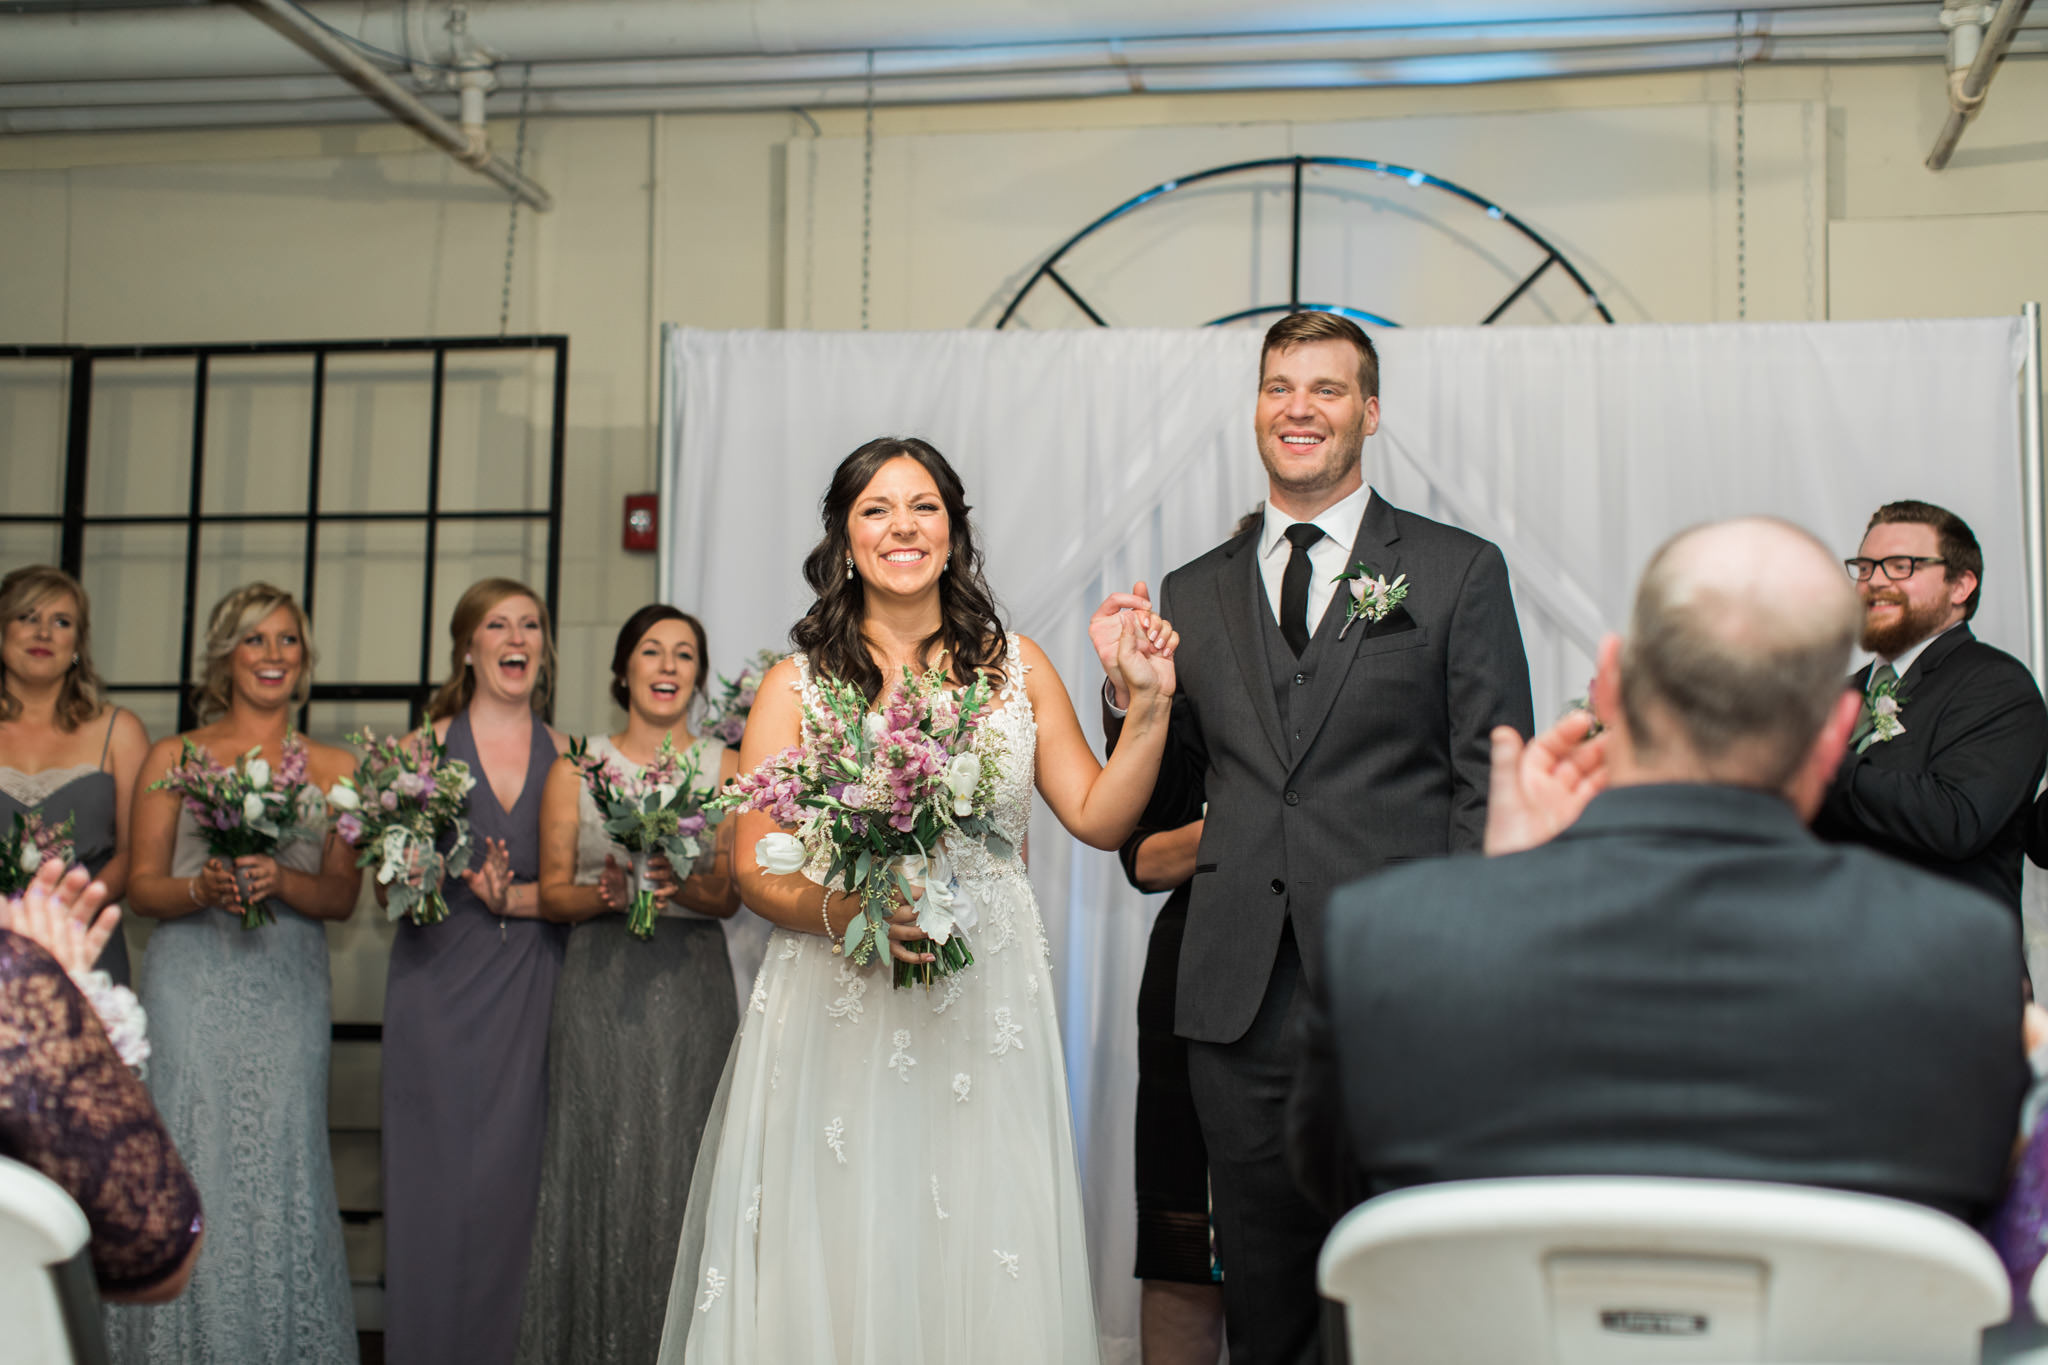 Louisville_Wedding_Mellwood_Arts_Center-52.jpg